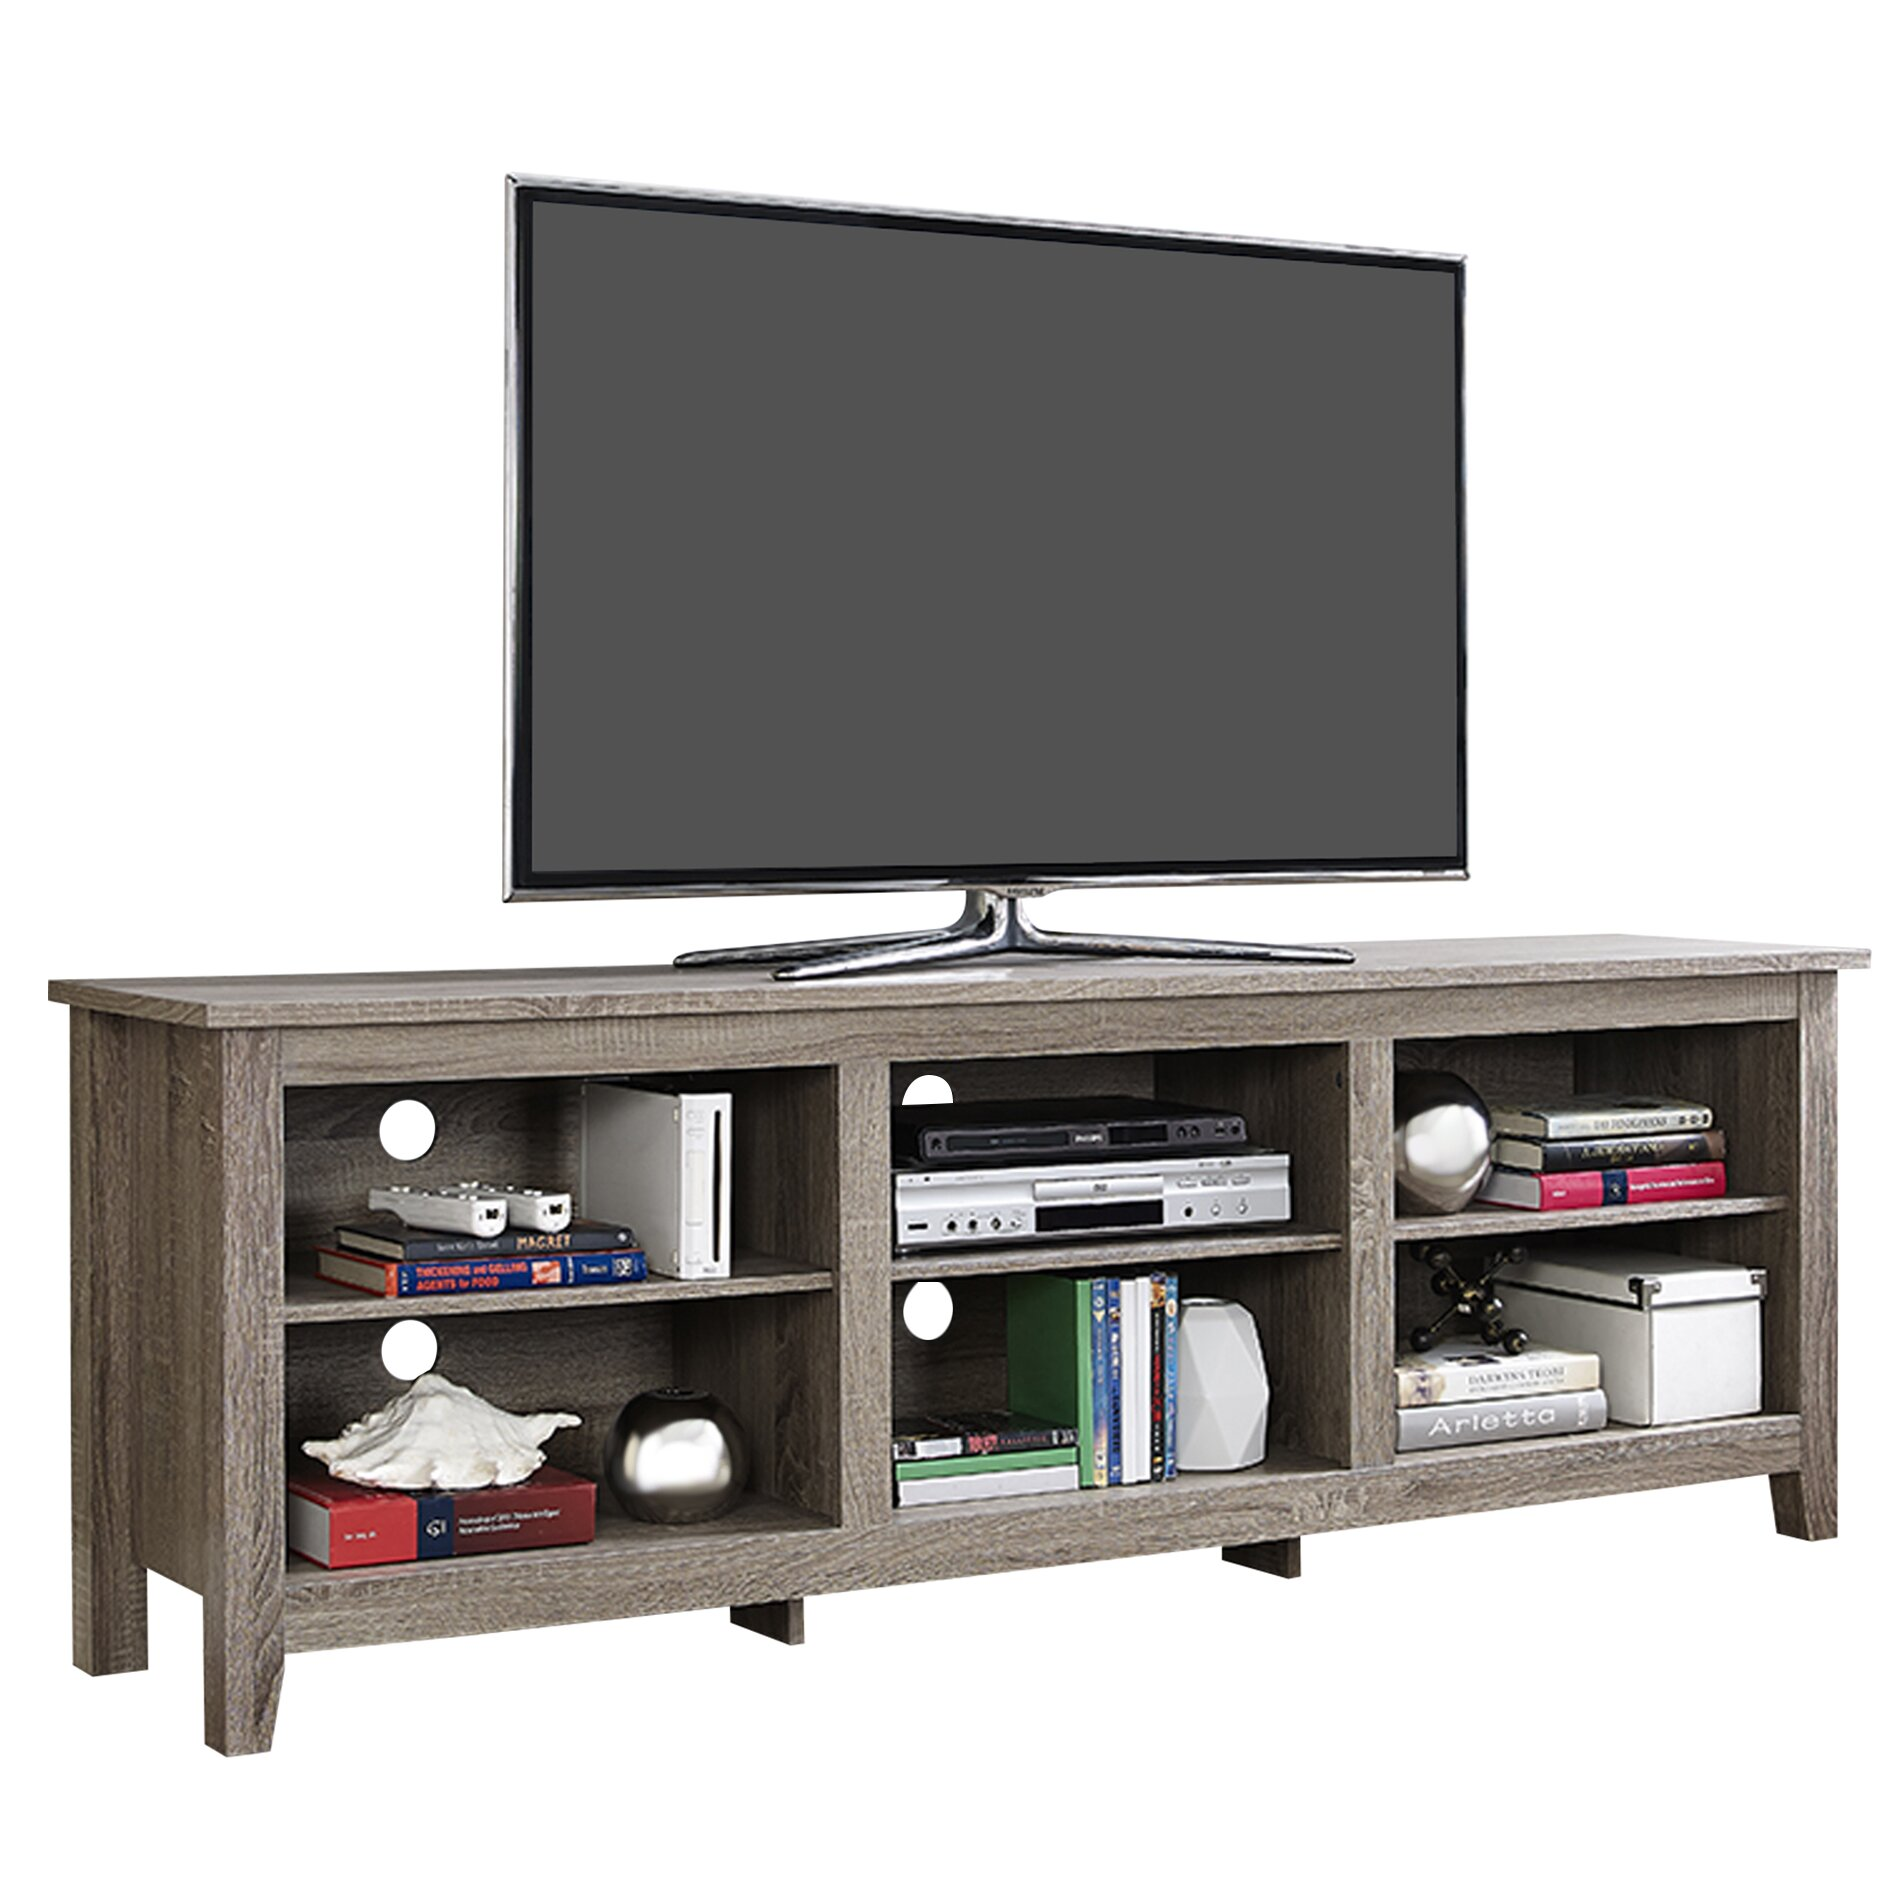 Beachcrest Home Sunbury Tv Stand Reviews Wayfair